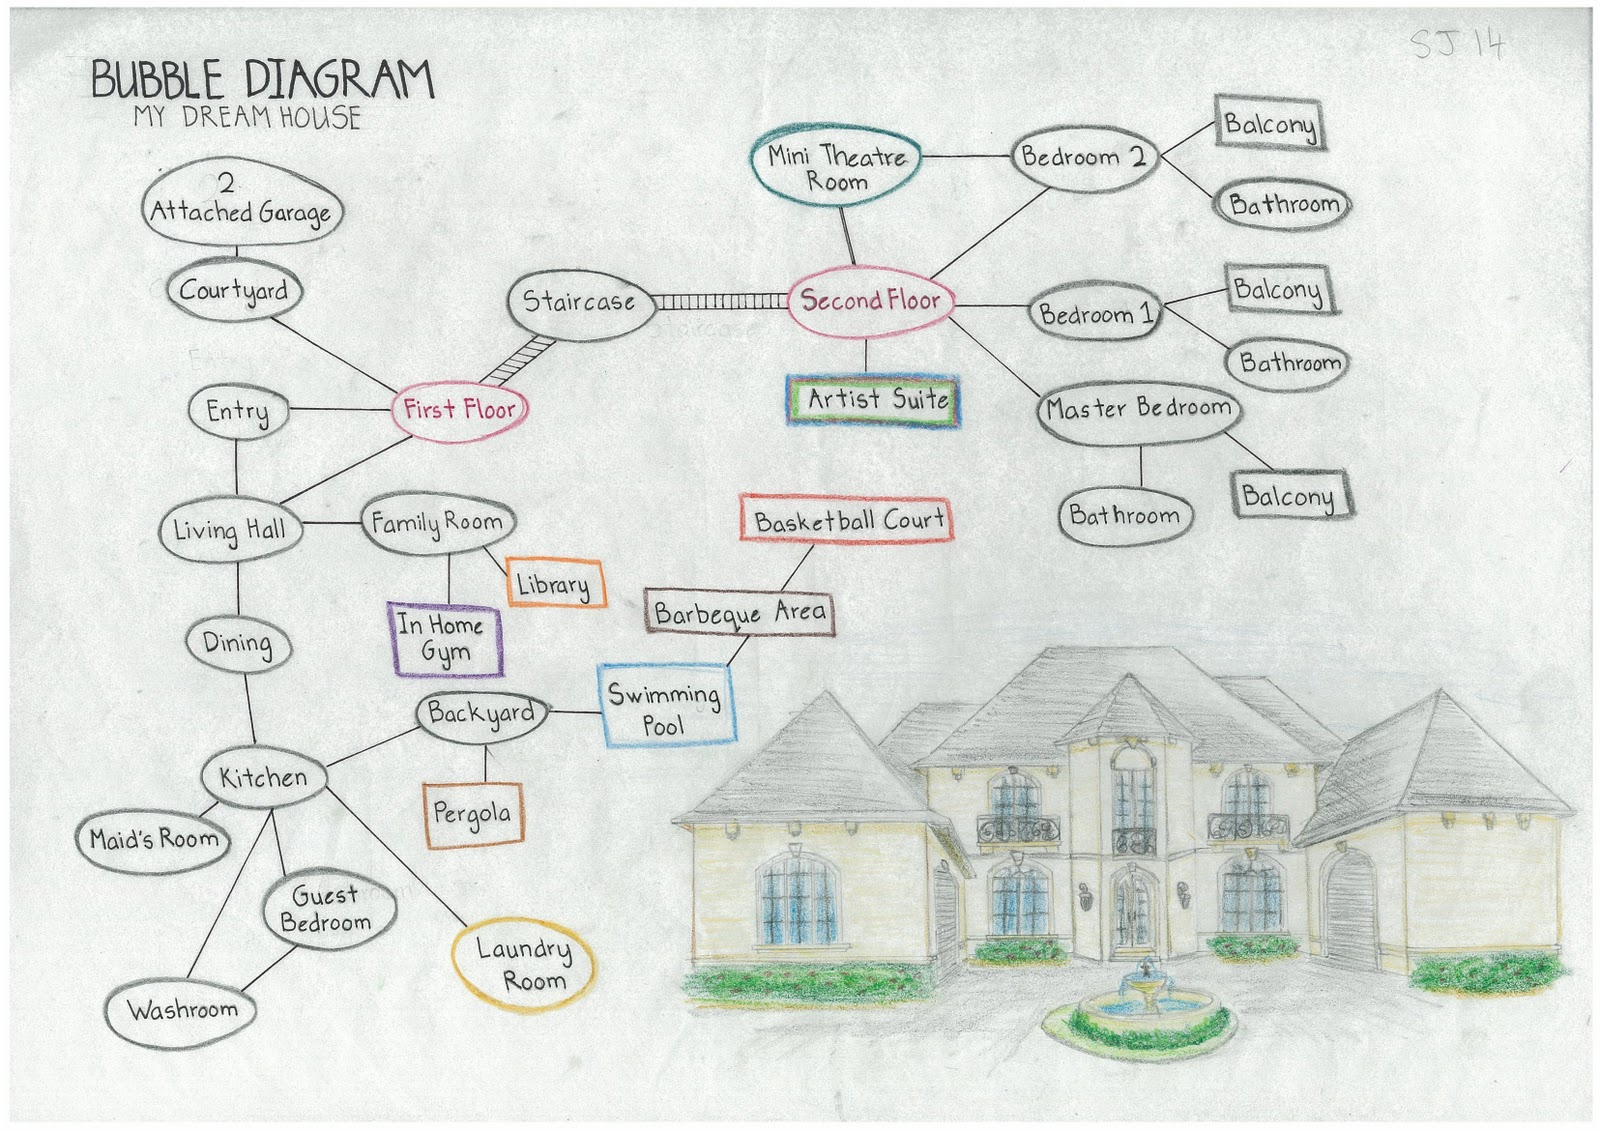 Dreamhouse Bubble Diagram